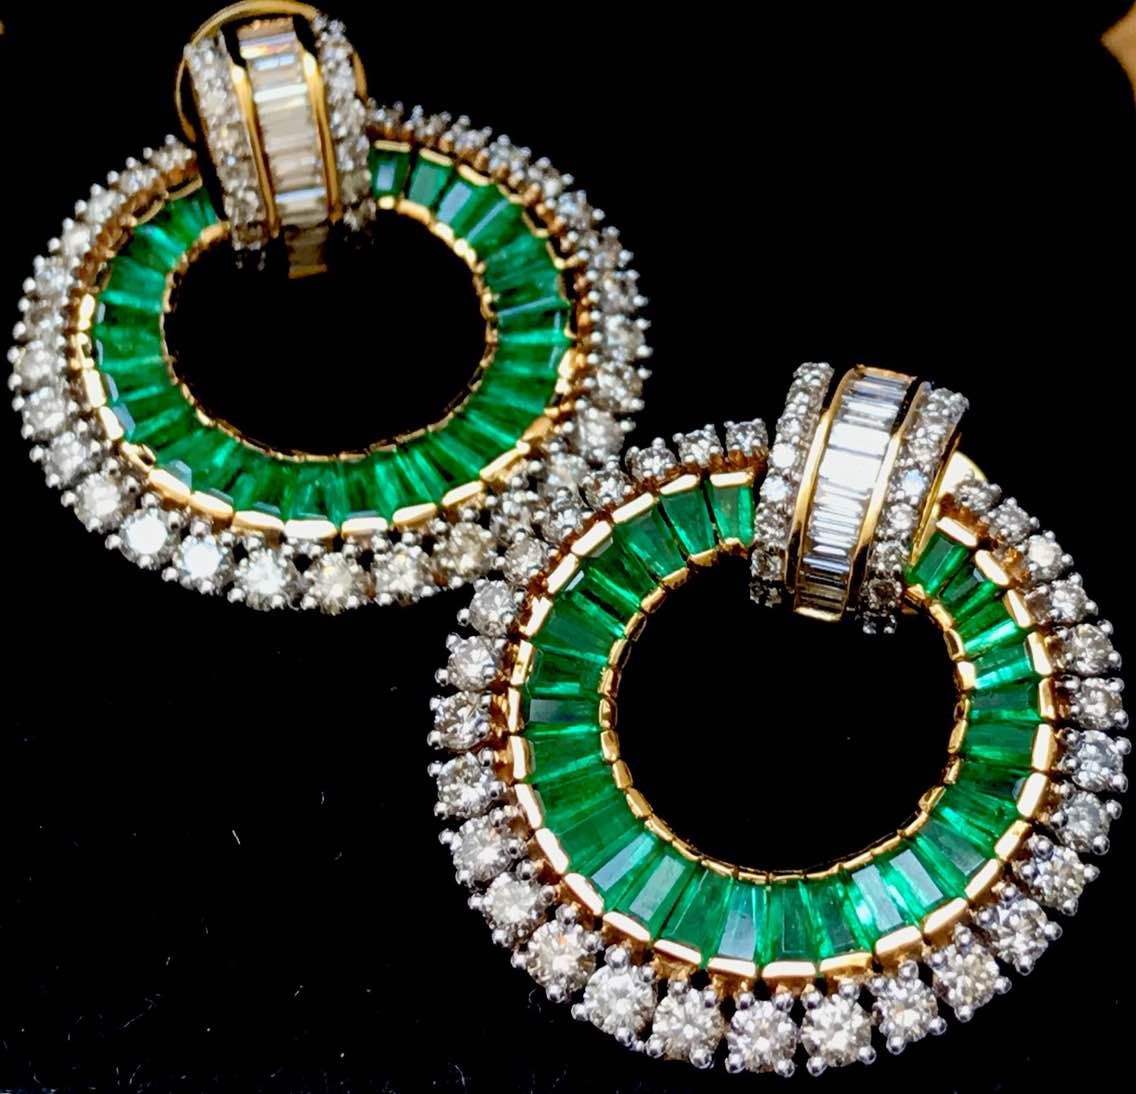 Exclusive Designer Emerald Jewellery that's not only rich looking but also pocket friendly, Shop now at our Jewellery Showroom cum Factory Outlet in jaipur to explore the best of Gemstone Jewellery Collection.